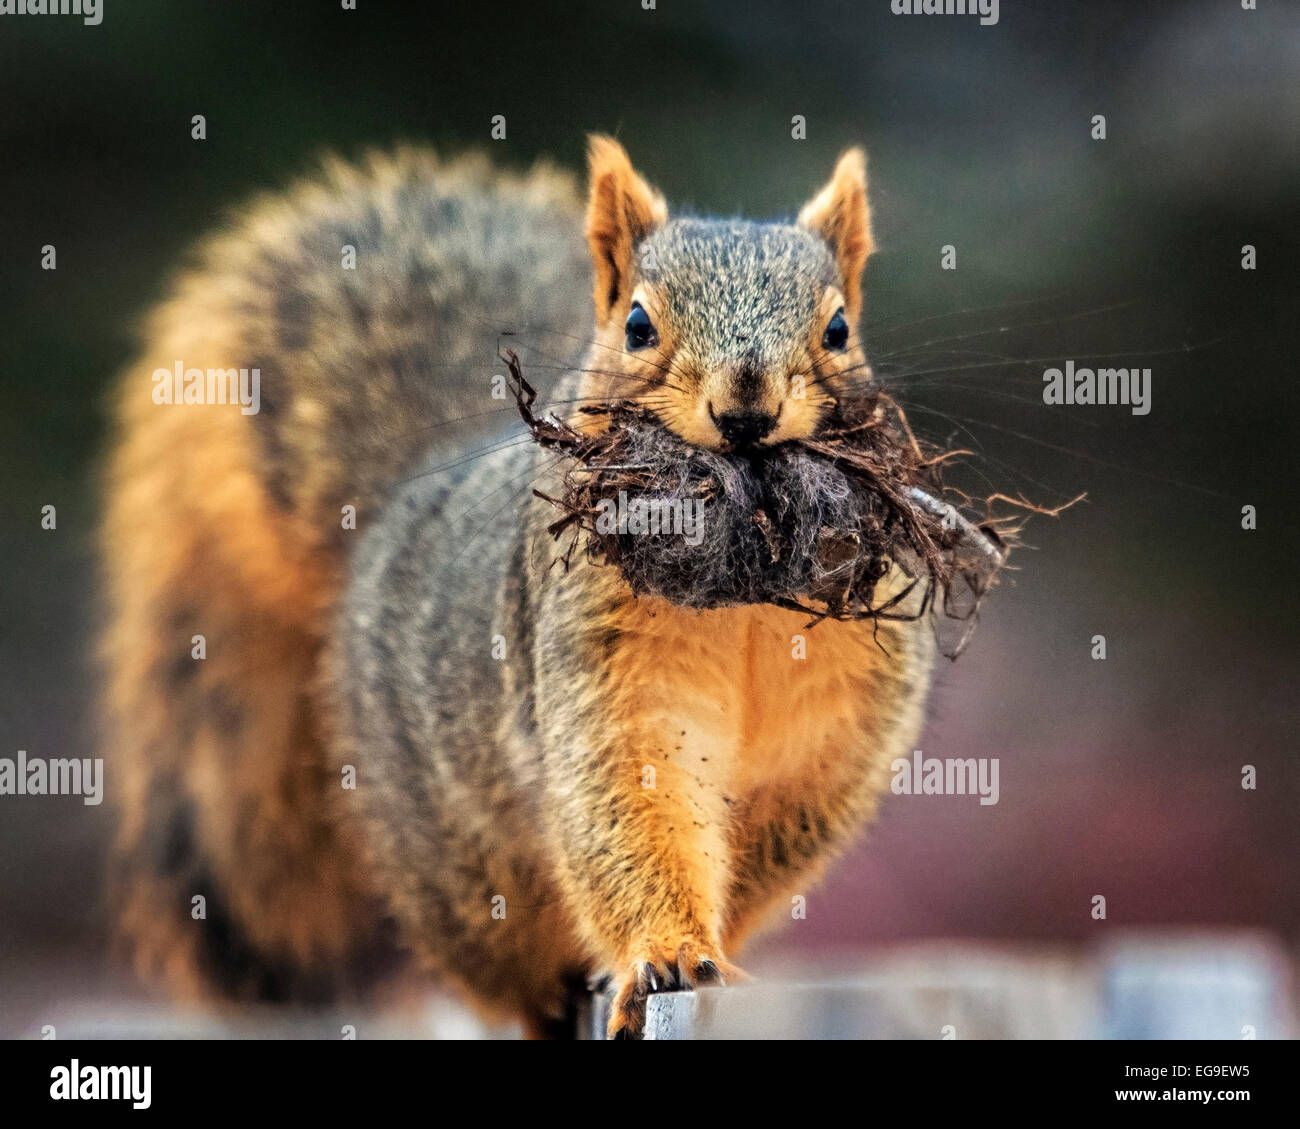 Close-up of squirrel avec des racines dans la bouche Photo Stock